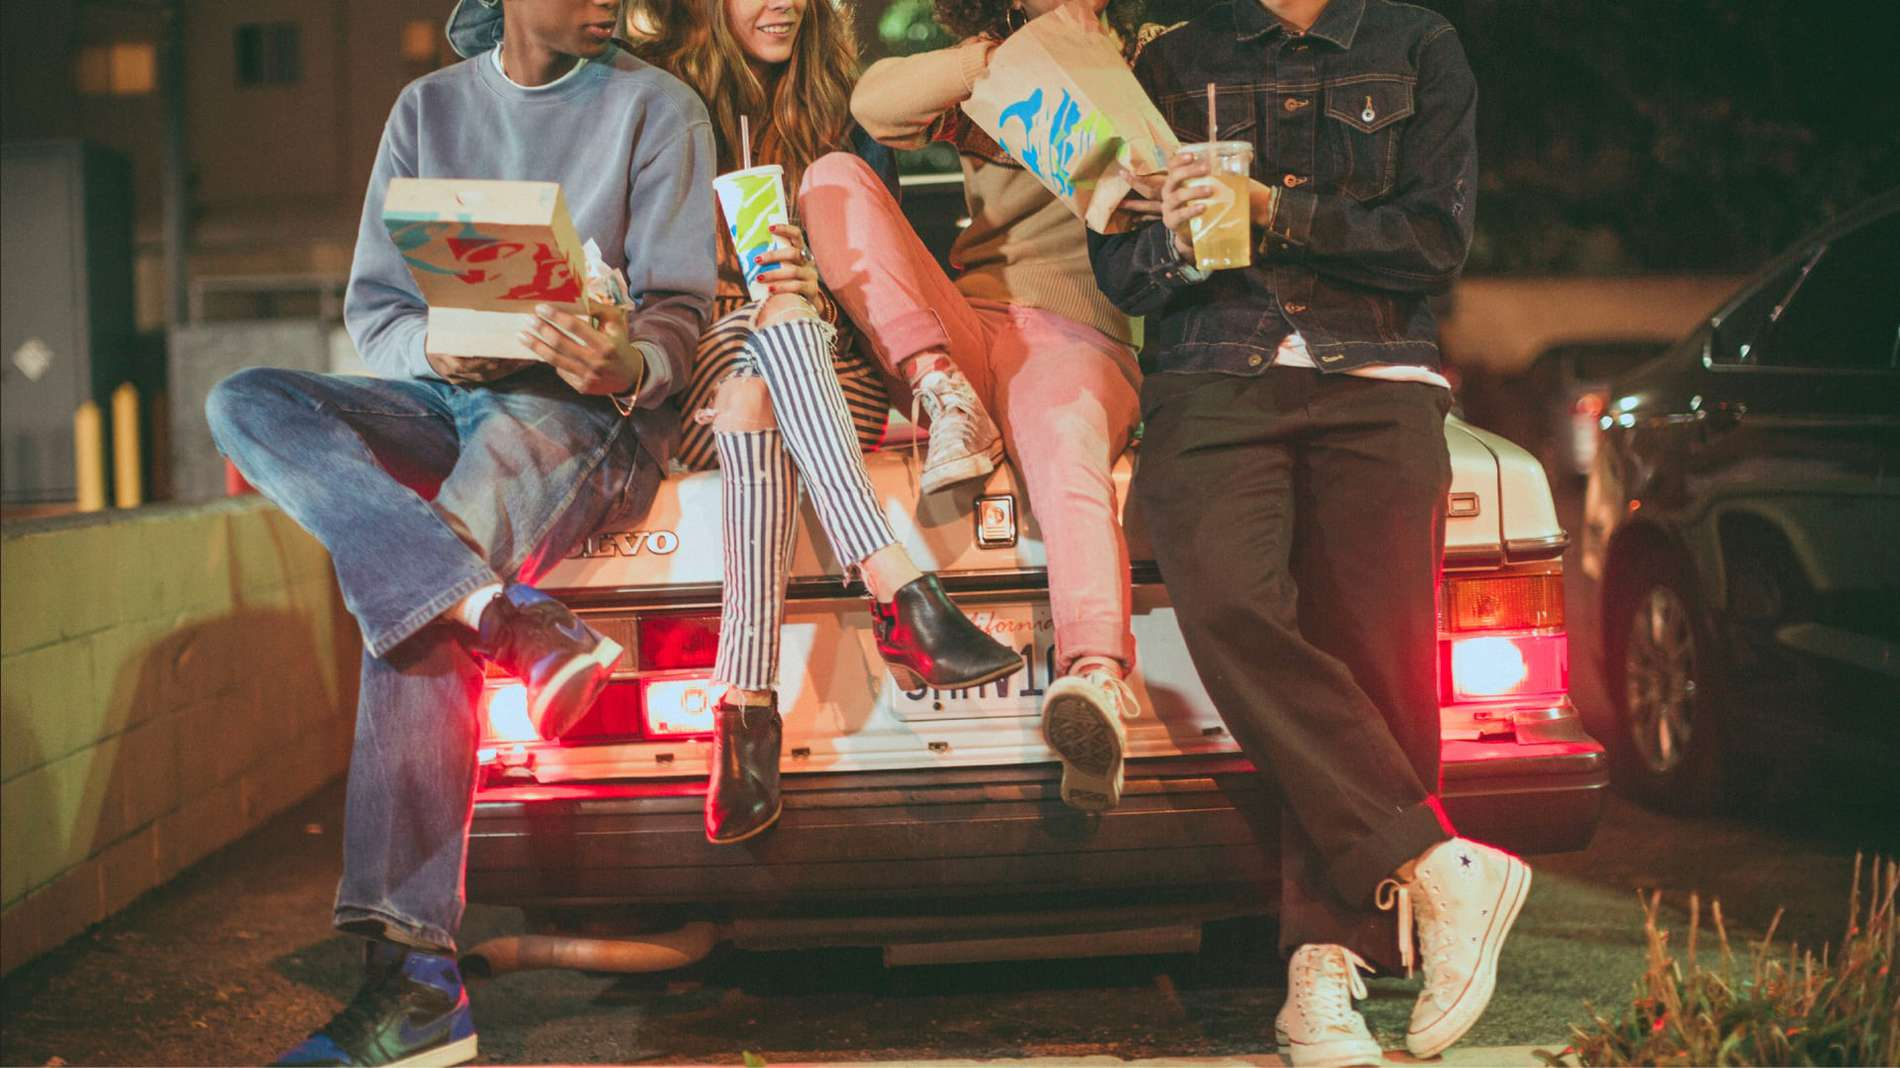 Three young people leaning against the trunk of the car while eating Taco Bell.